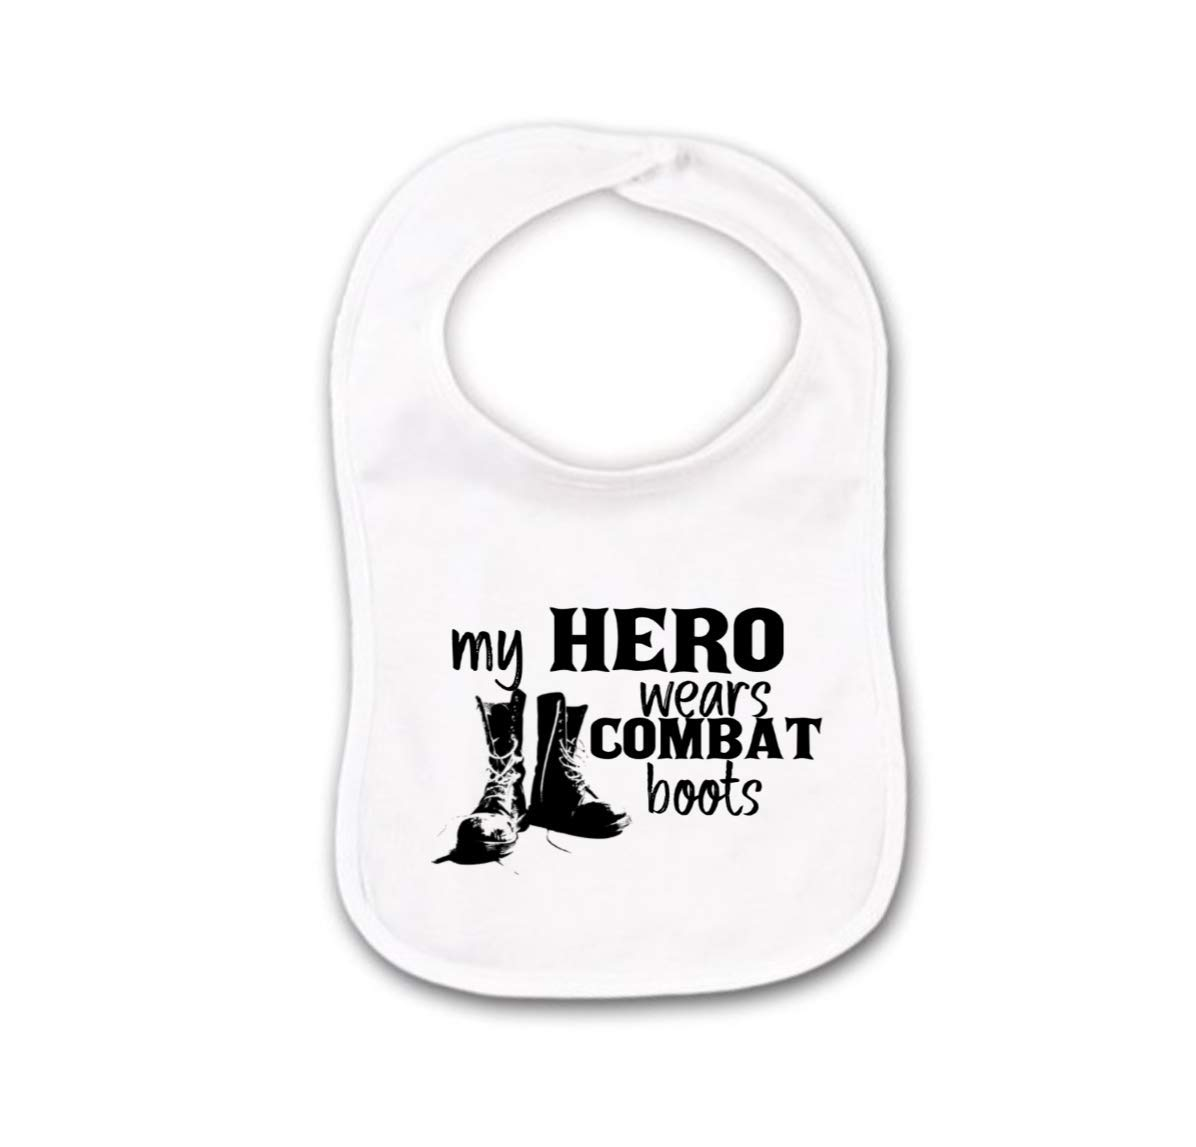 My Hero Wears Combat Boots Military Baby Bib or Burp Cloth For Future Soldier